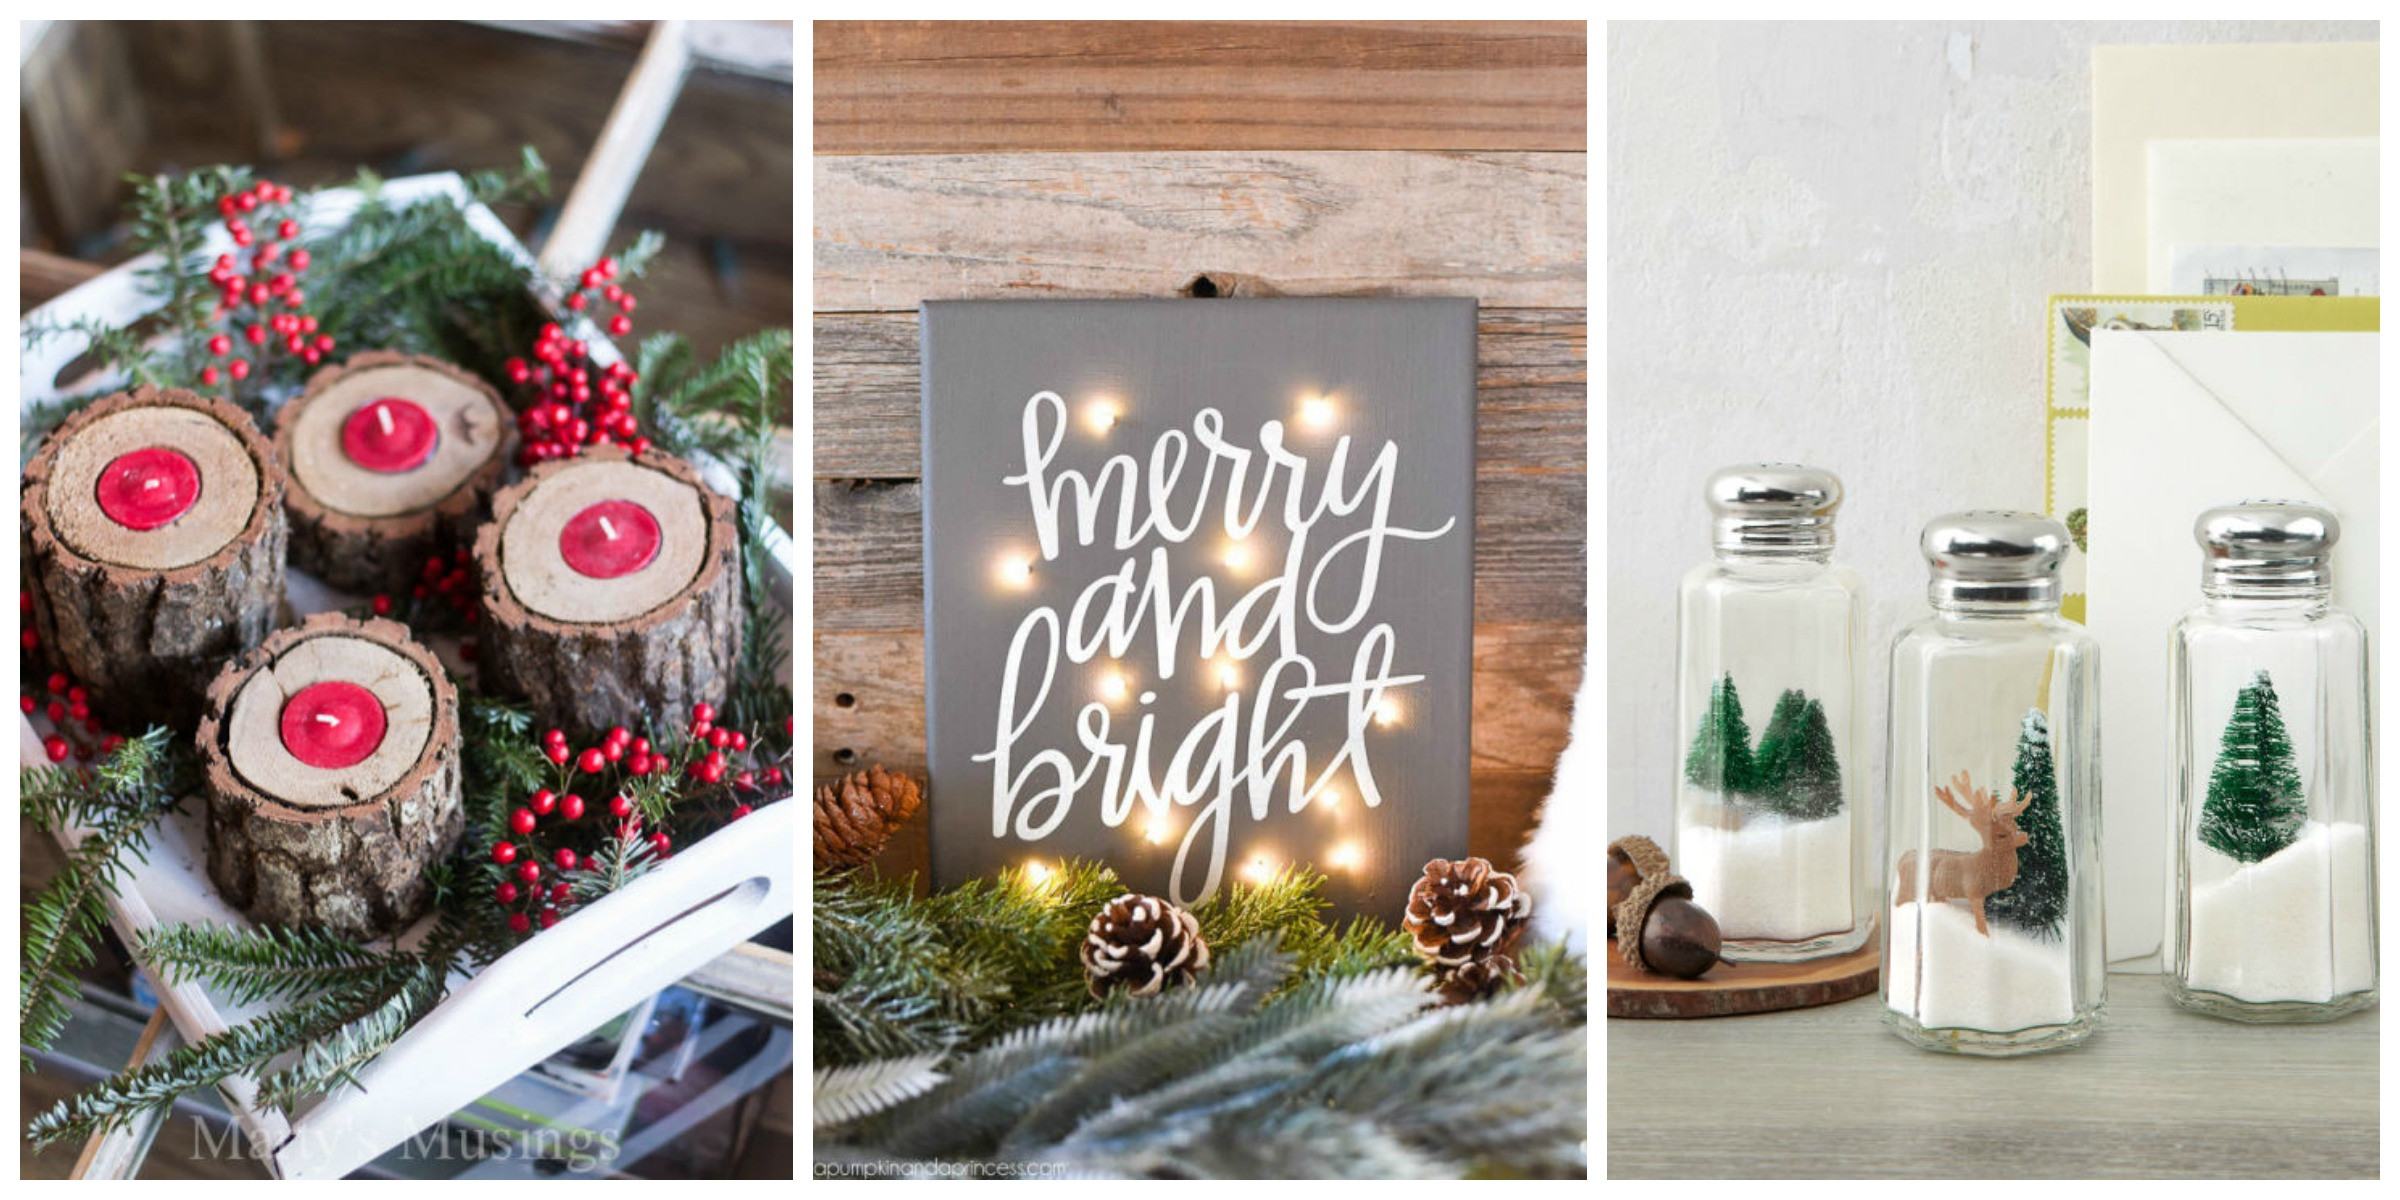 Best ideas about DIY Christmas Ideas . Save or Pin 35 DIY Homemade Christmas Decorations Christmas Decor Now.